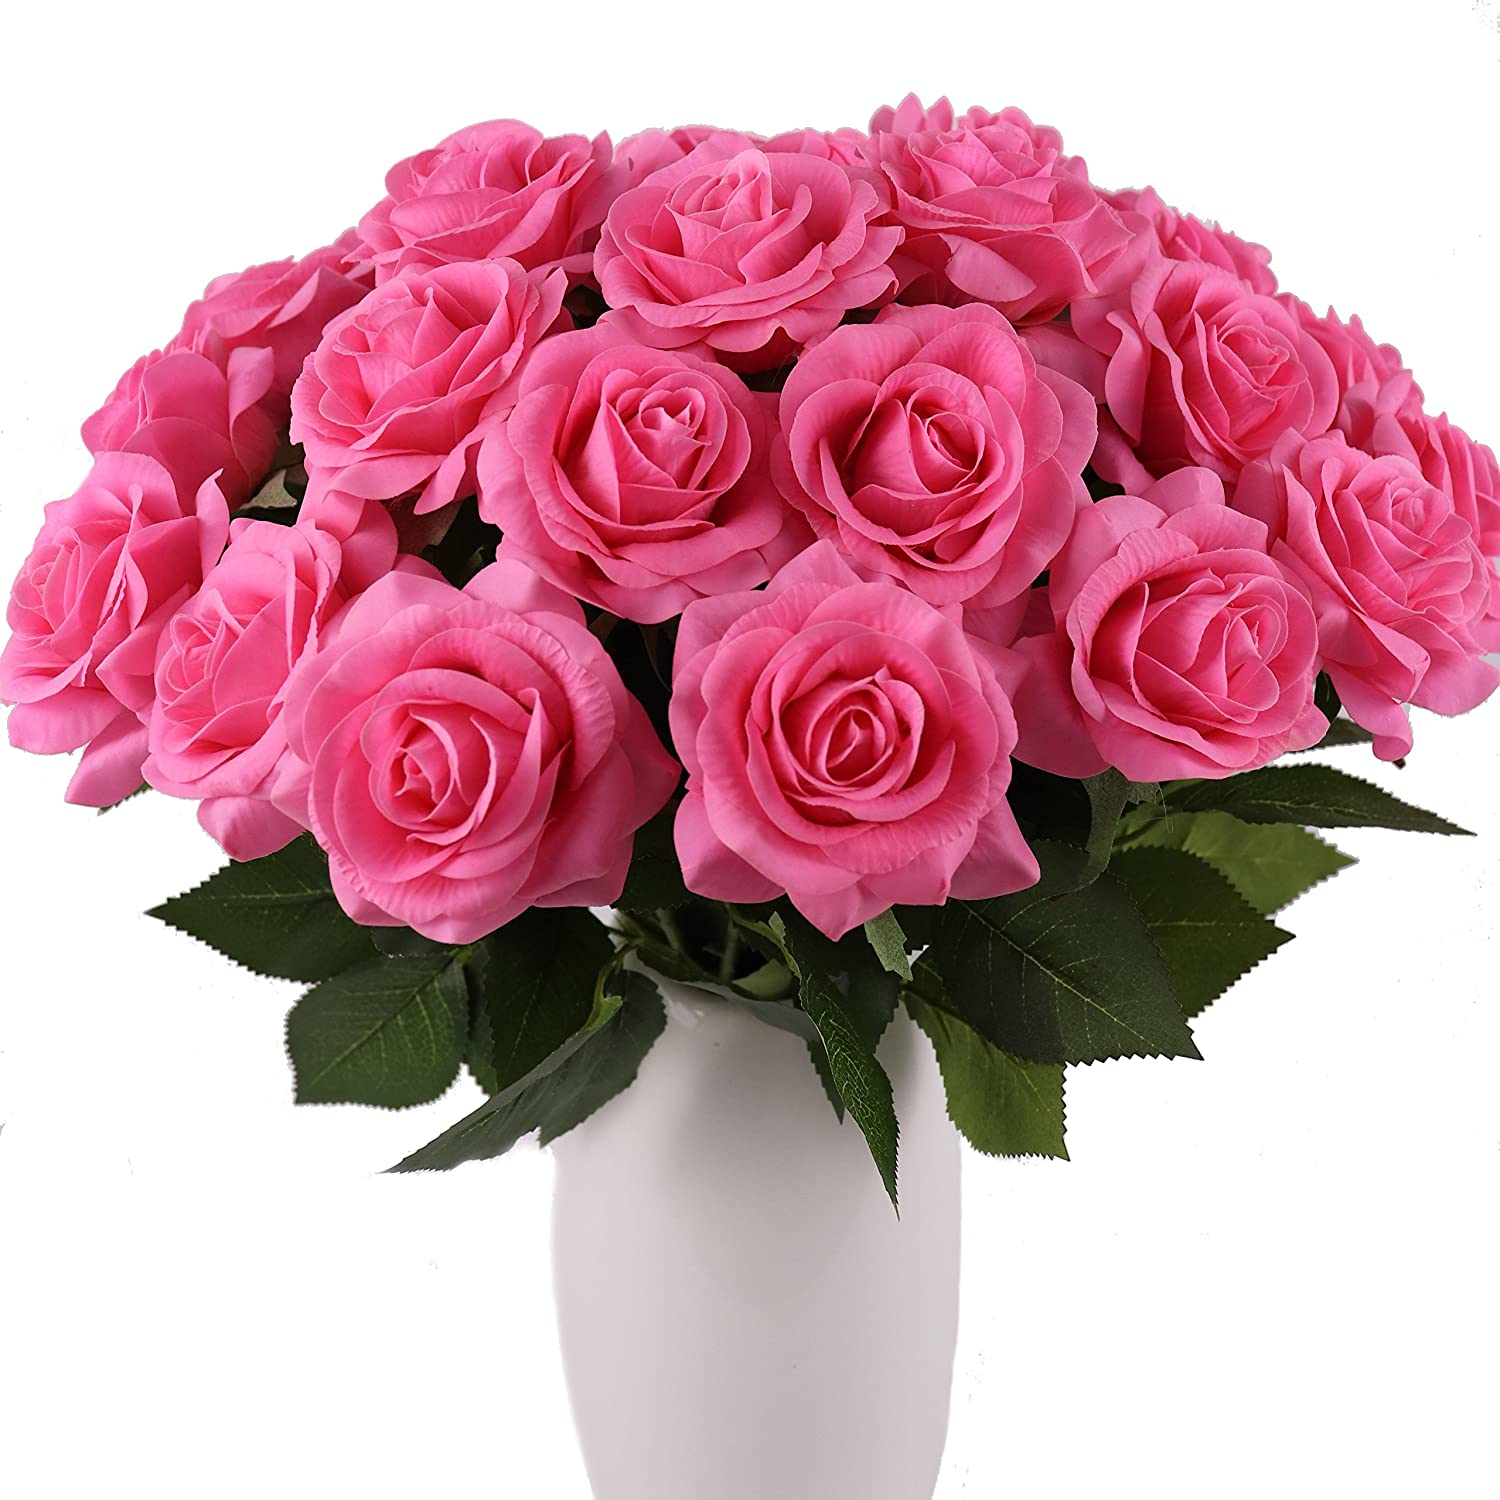 KISMEET Artificial Roses Fake Silk Real Finally popular brand Discount is also underway Long Touch Stem Flowers